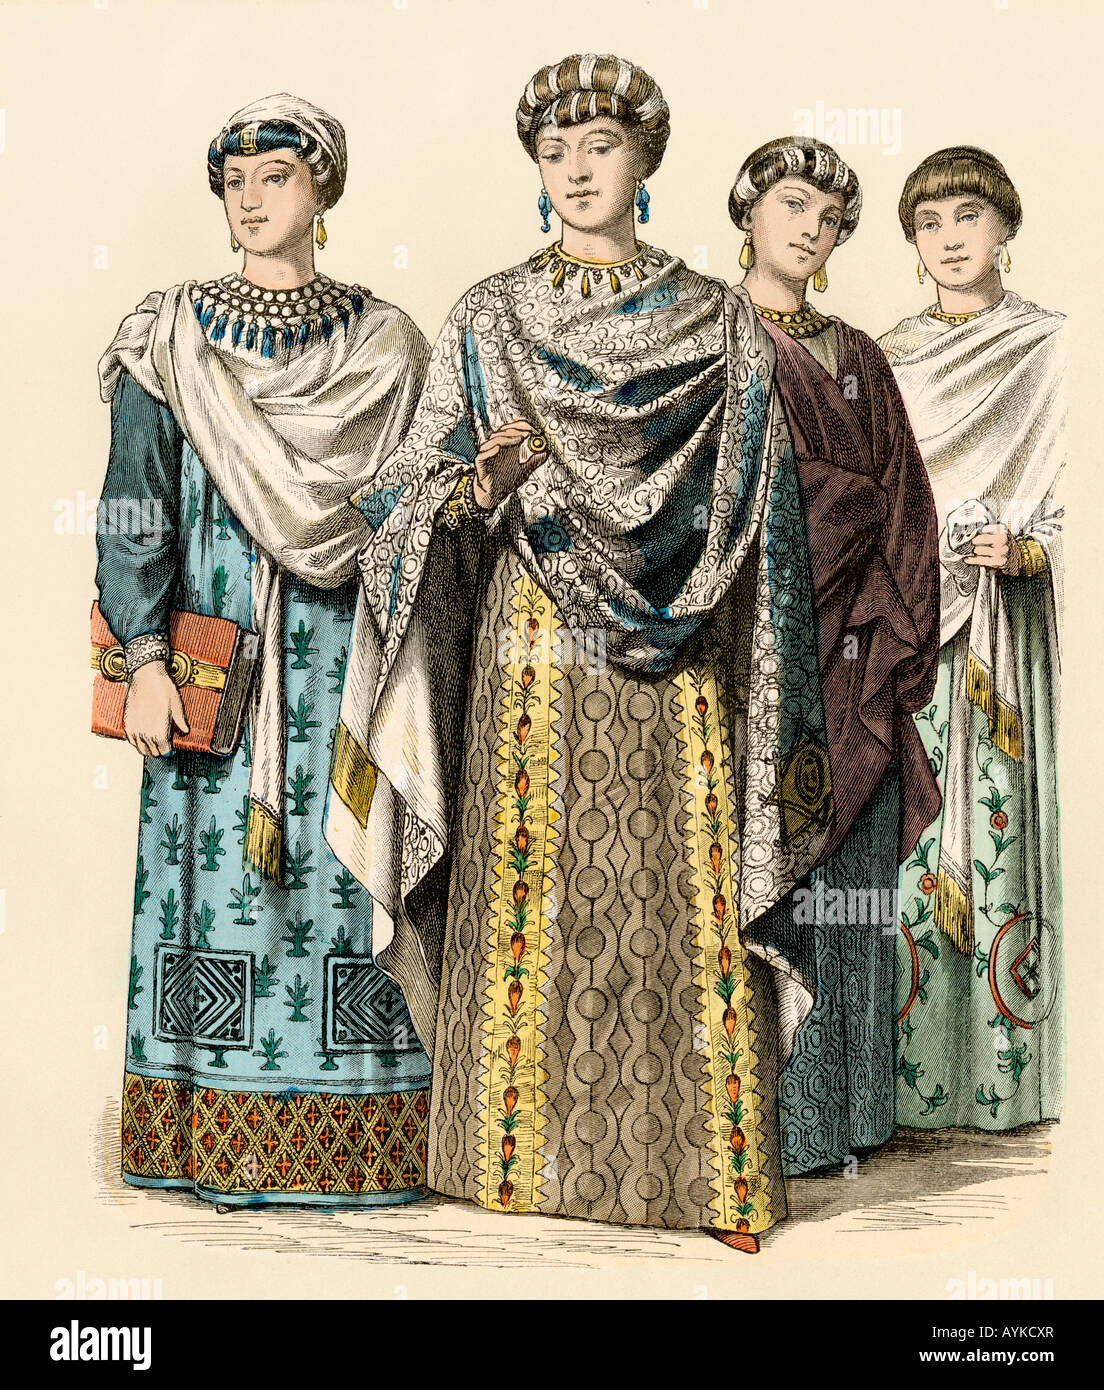 Ladies in court of Empress Theodora, Eastern Roman Empire 500 AD. Hand-colored print - Stock Image